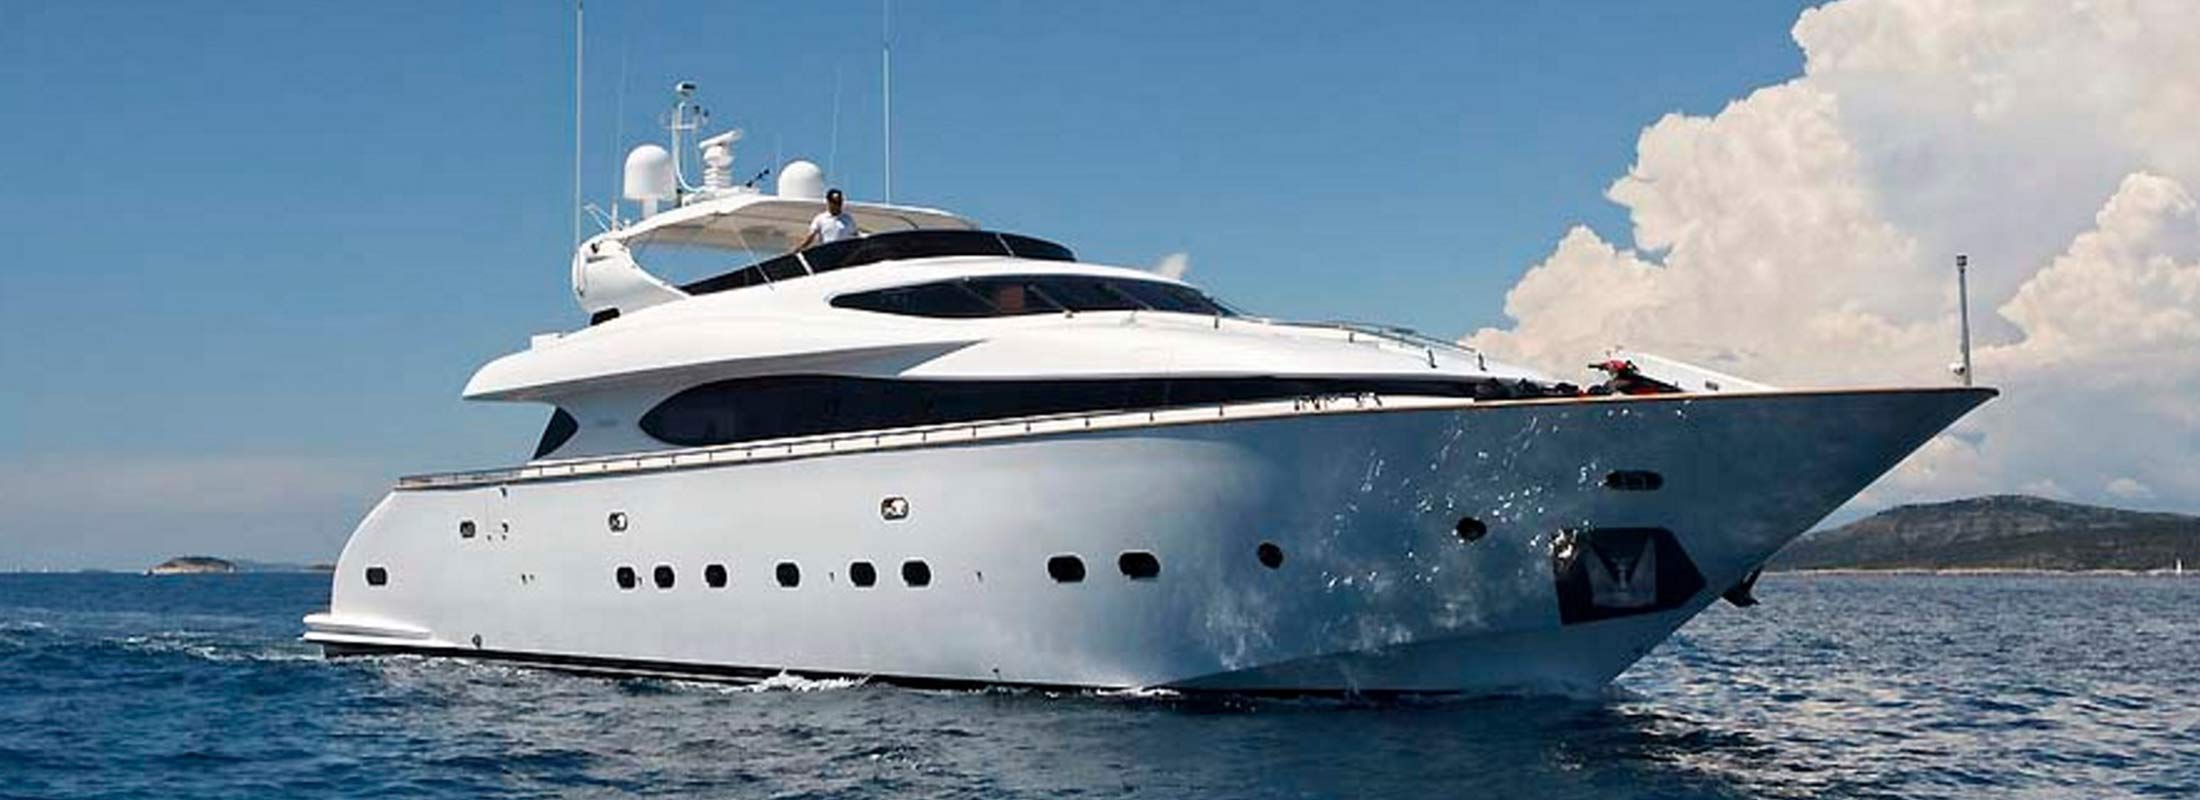 Adriatic Blues Motor Yacht for Charter Mediterranean slider 1